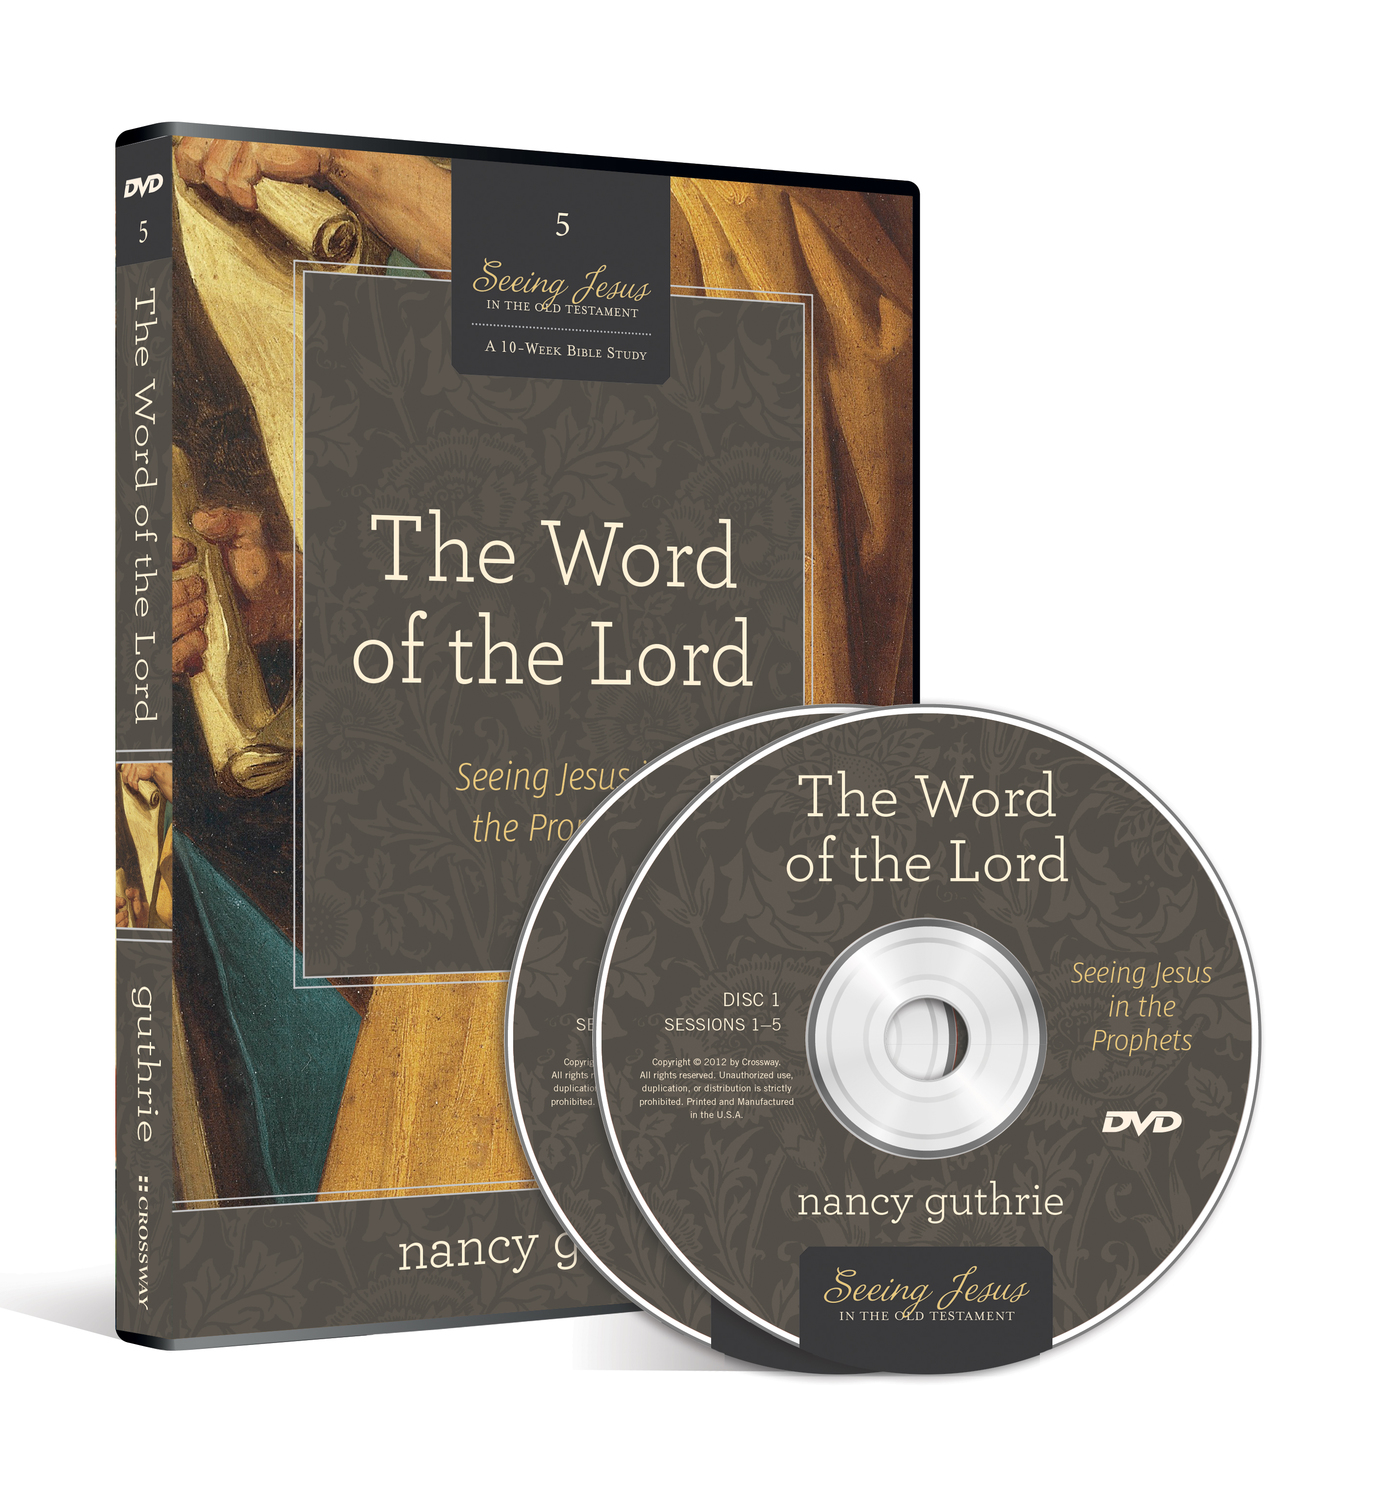 The Word of the Lord DVD